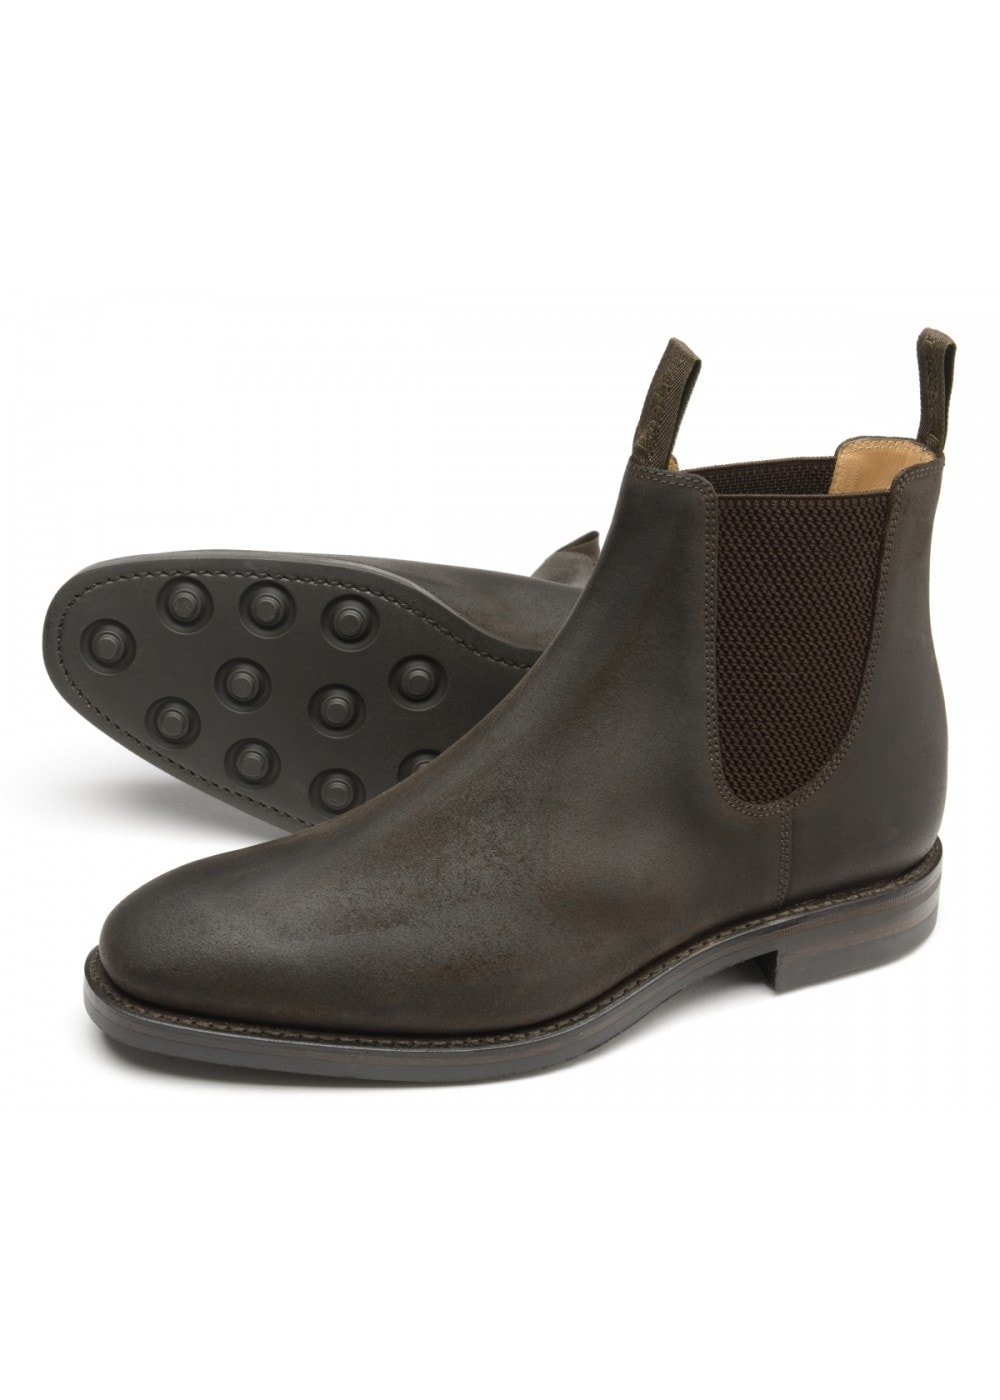 Loake Chatsworth Boots - Mens from A